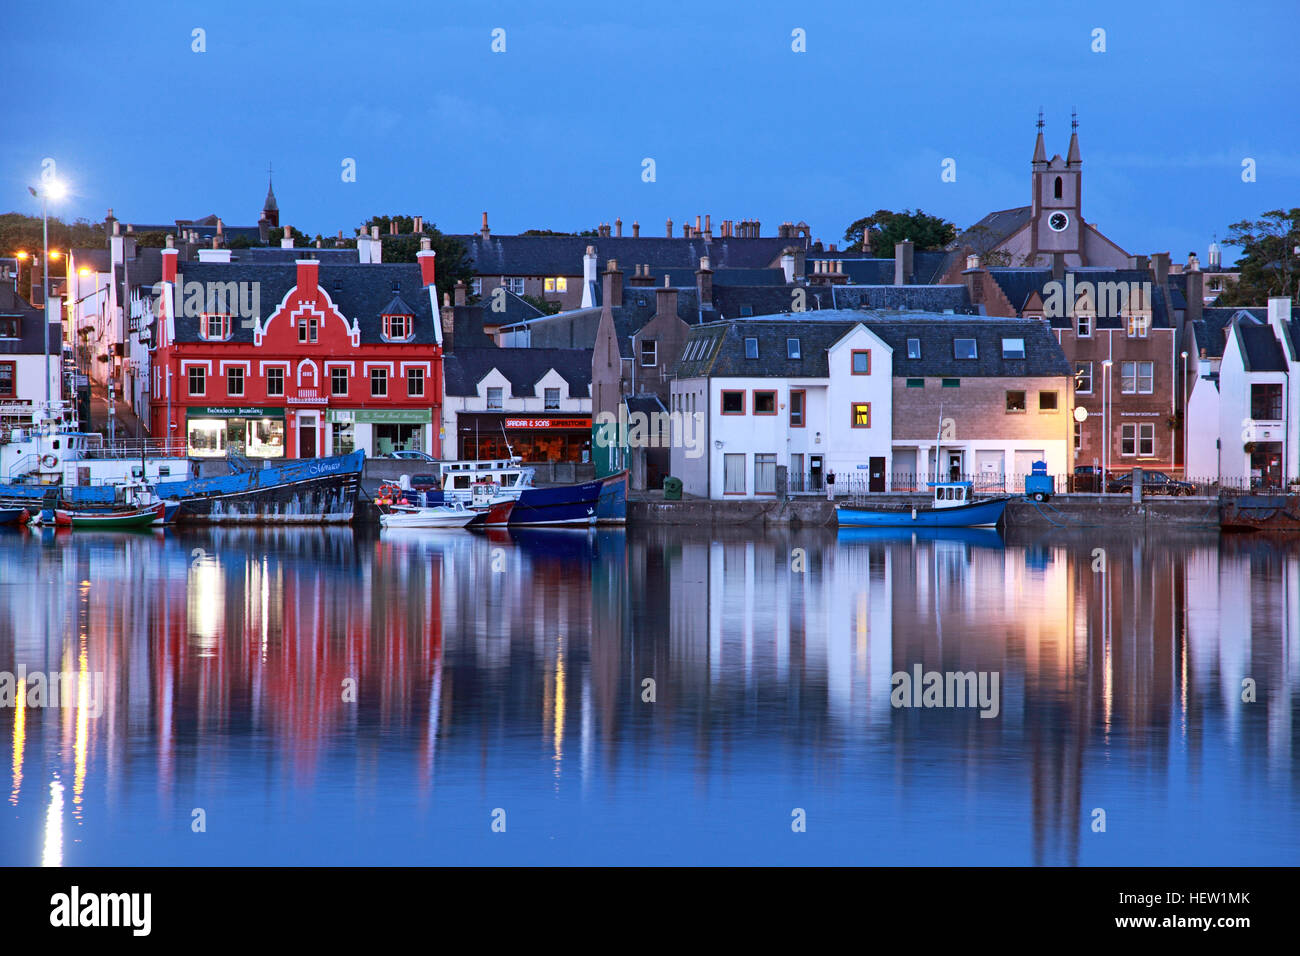 Scotland,Outer,Hebrides,CNES,Comhairle nan Eilean Siar,Comhairle,nan,Eilean,Siar,port,harbour,night,blue,bluehour,reflection,reflections,Steòrnabhagh,Na h-Eileanan Siar,Western Isles,Leòdhas,Eilean,CNES,Alba,harbour at night,Eilean Leòdhais,Stornoway town,GoTonySmith,@HotpixUK,Tony,Smith,UK,GB,Great,Britain,United,Kingdom,Scottish,British,Scotland,problem,with,problem with,issue with,Centre,Art,Artists,social,tour,tourism,tourists,Lewis,Stornoway,outer Hebrides,outer,isles,islands,West Scotland,Stornoway Town,Town,Urban,Isle of Lewis,Steòrnabhagh,iconic,Alba,Celtic,@HotpixUK,HotpixUK,tour,tourist,attraction,travel,Scots,SNP,independance,independence,Buy Pictures of,Buy Images Of,Images of,Stock Images,Tony Smith,United Kingdom,Great Britain,British Isles